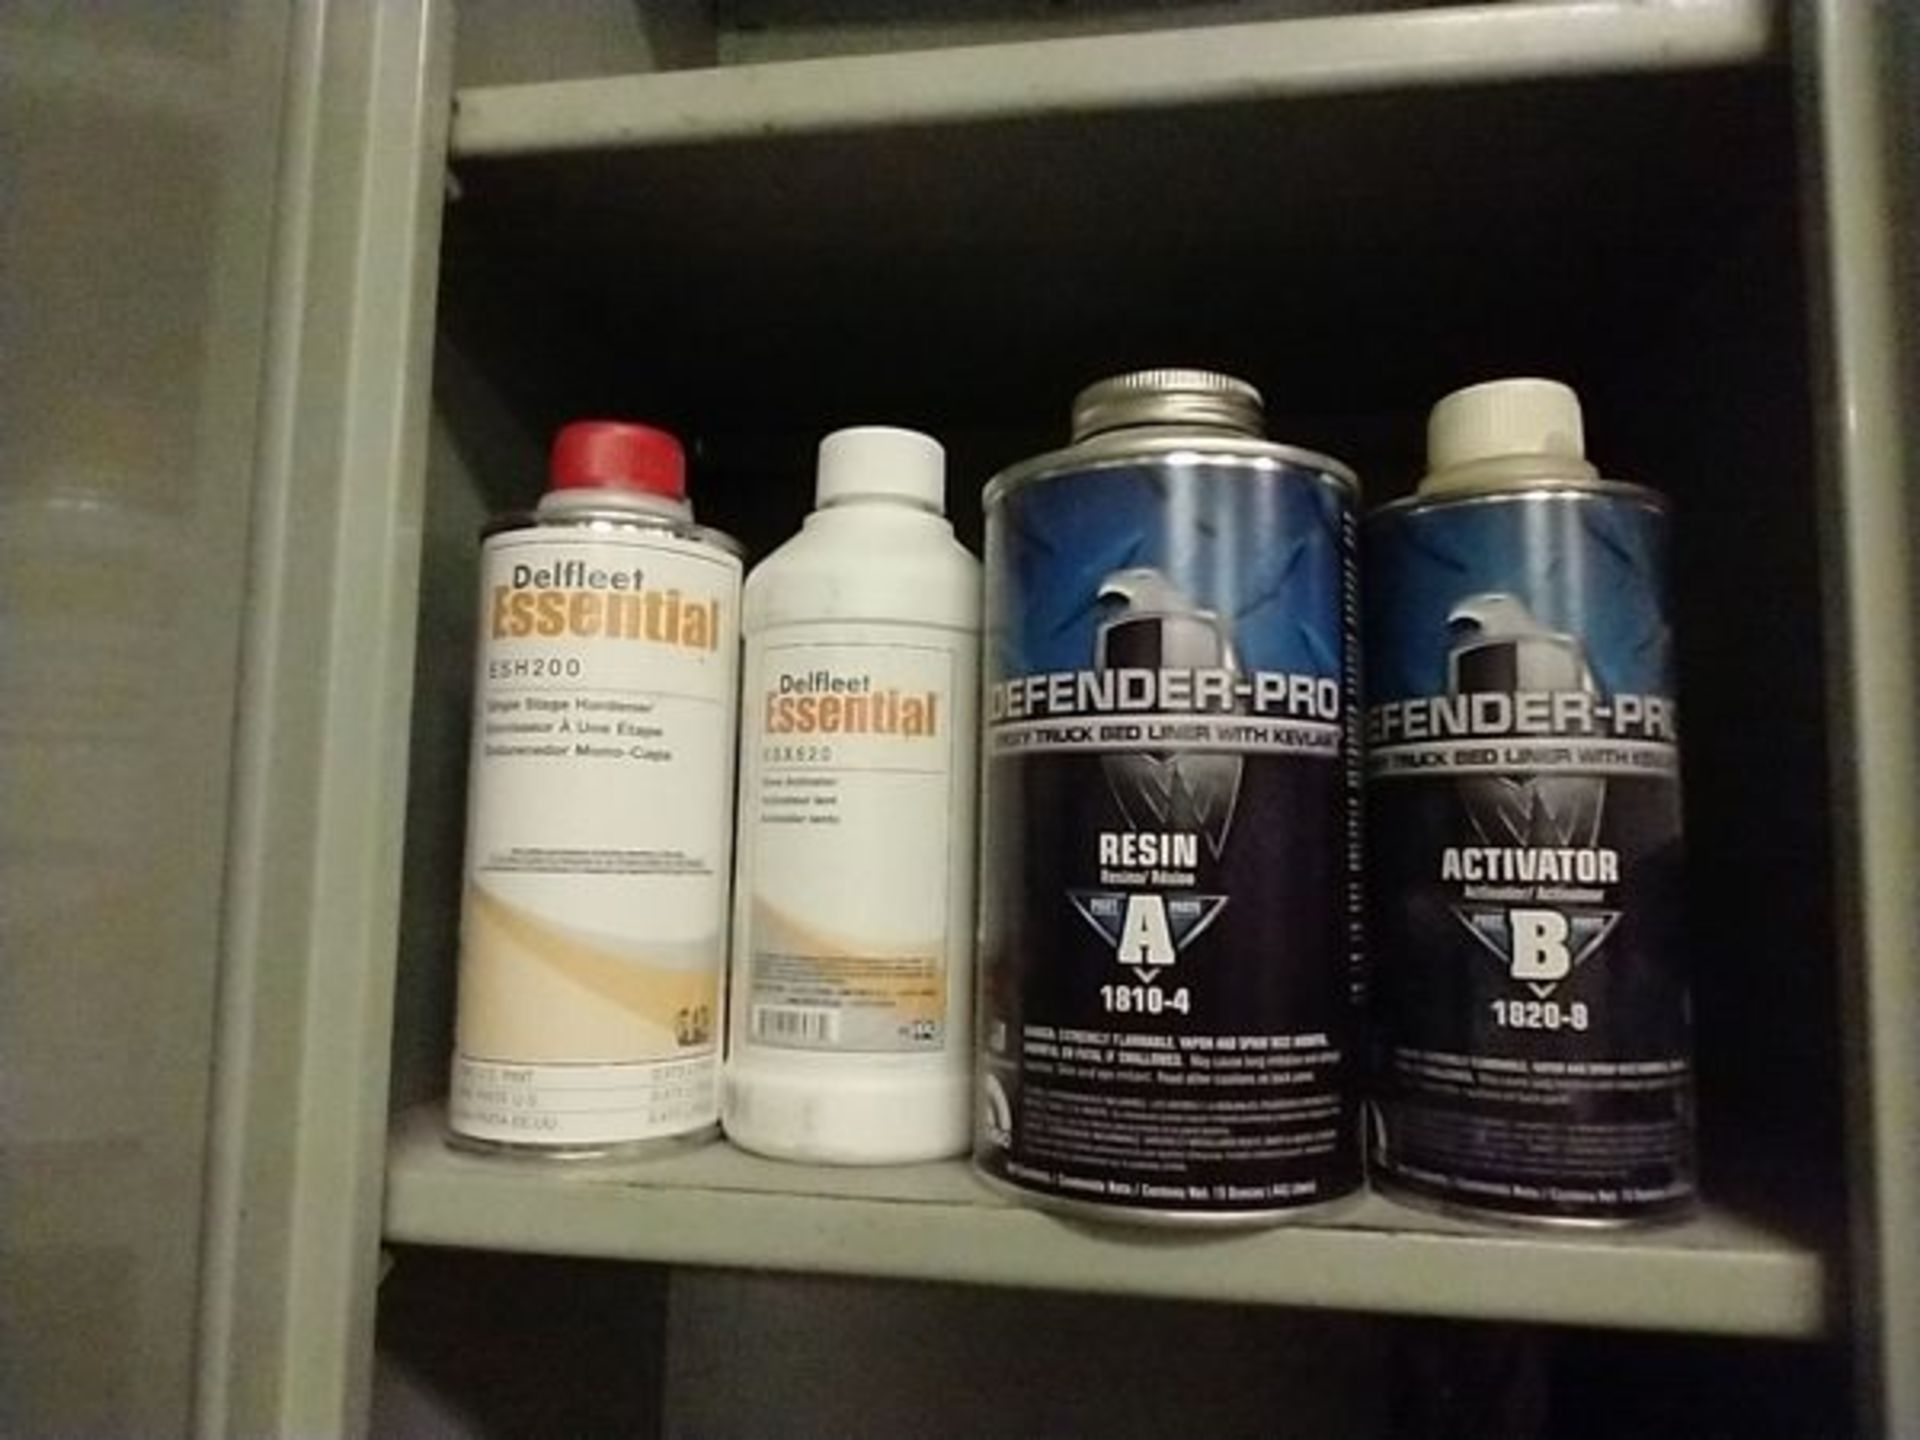 LOT OF 4 BOTTLES OF ACTIVATOR, RESIN, HARDENER AND SLOW ACTIVATION